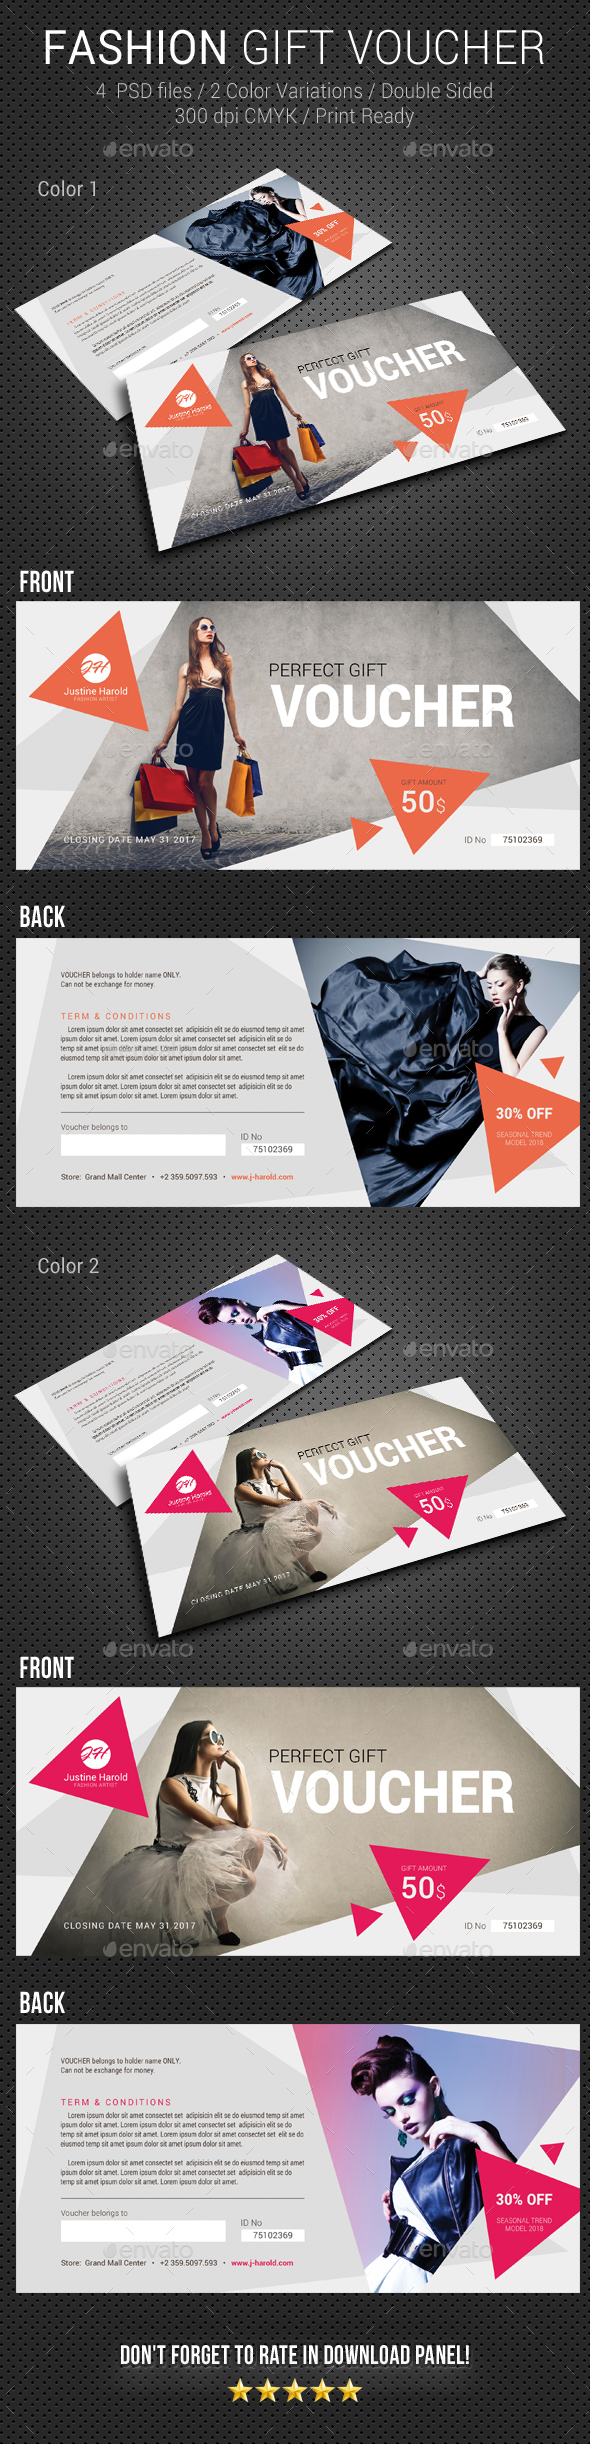 Fashion Gift Voucher 2 - Cards & Invites Print Templates